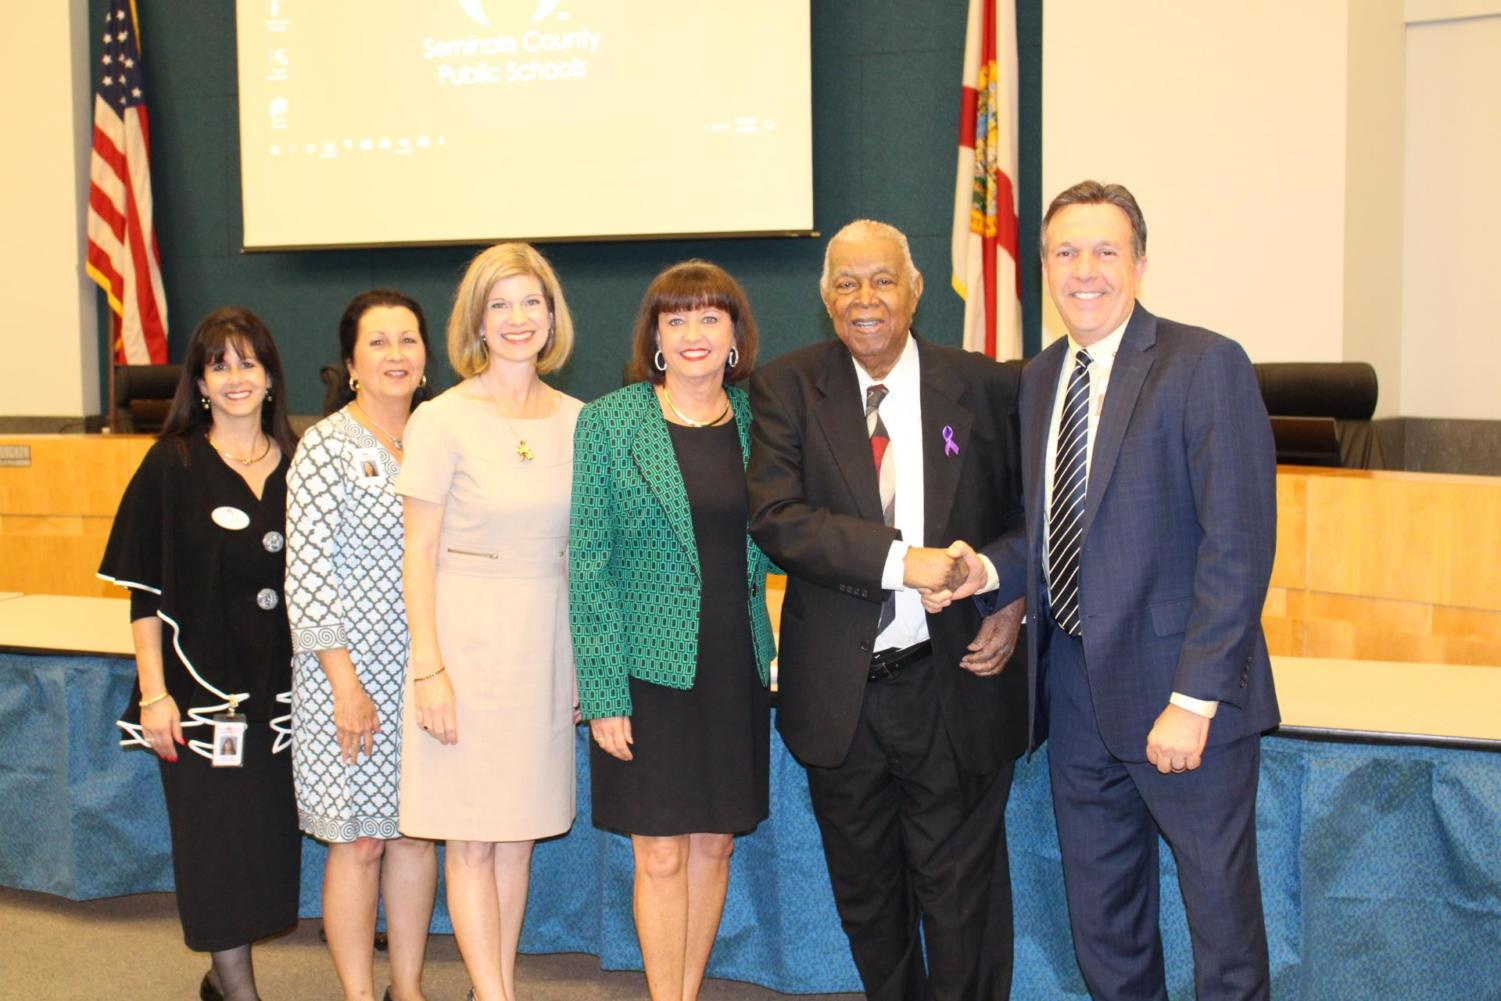 The SCPS School Board voted to name Seminole High School's ninth grade center after Edward Blacksheare, an influential member of SHS's community.